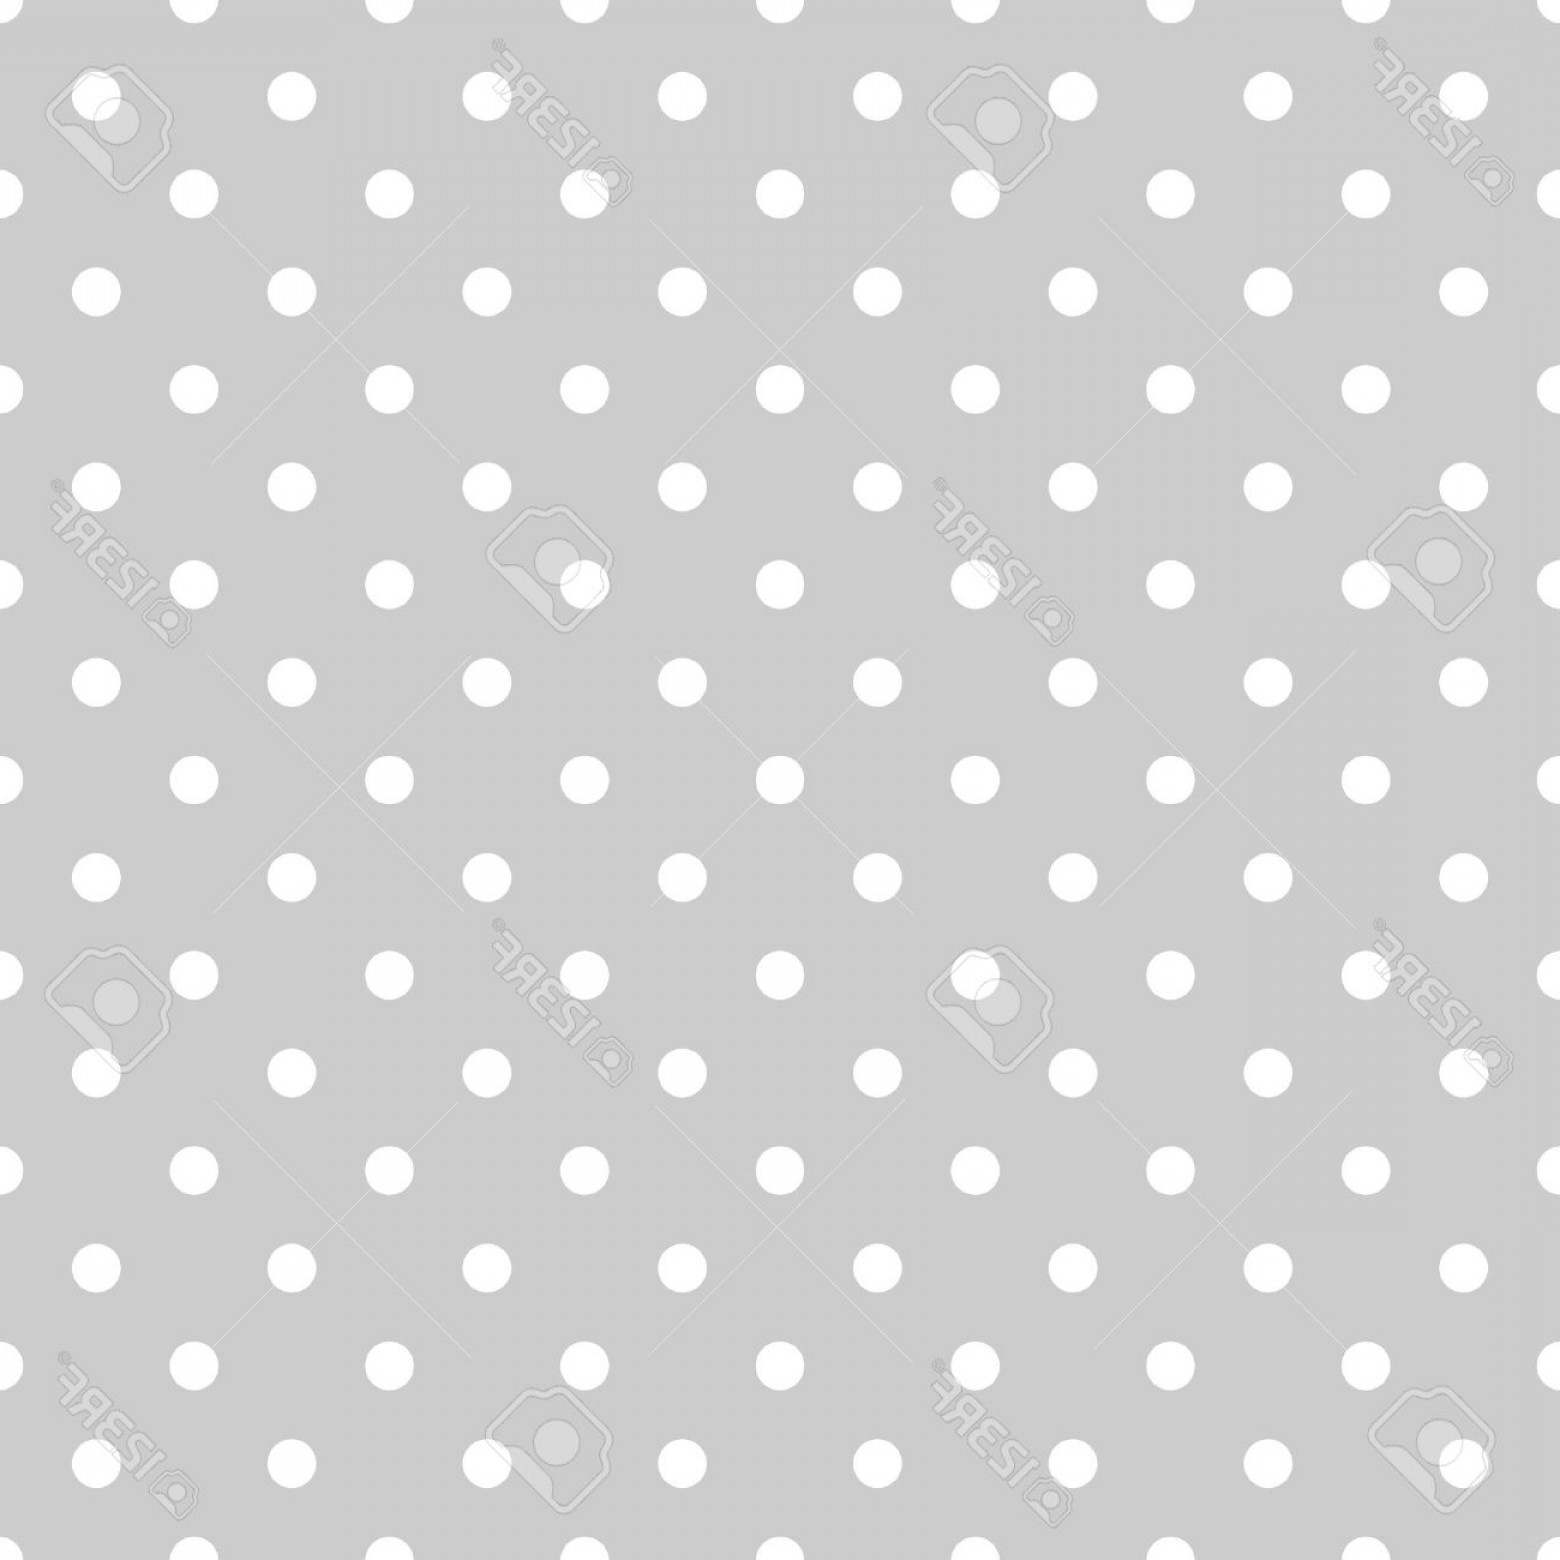 Polka Dot Background Vector Y: Photostock Vector Seamless White And Grey Pattern Or Tile Background With Small Polka Dots For Desktop Wallpaper And W